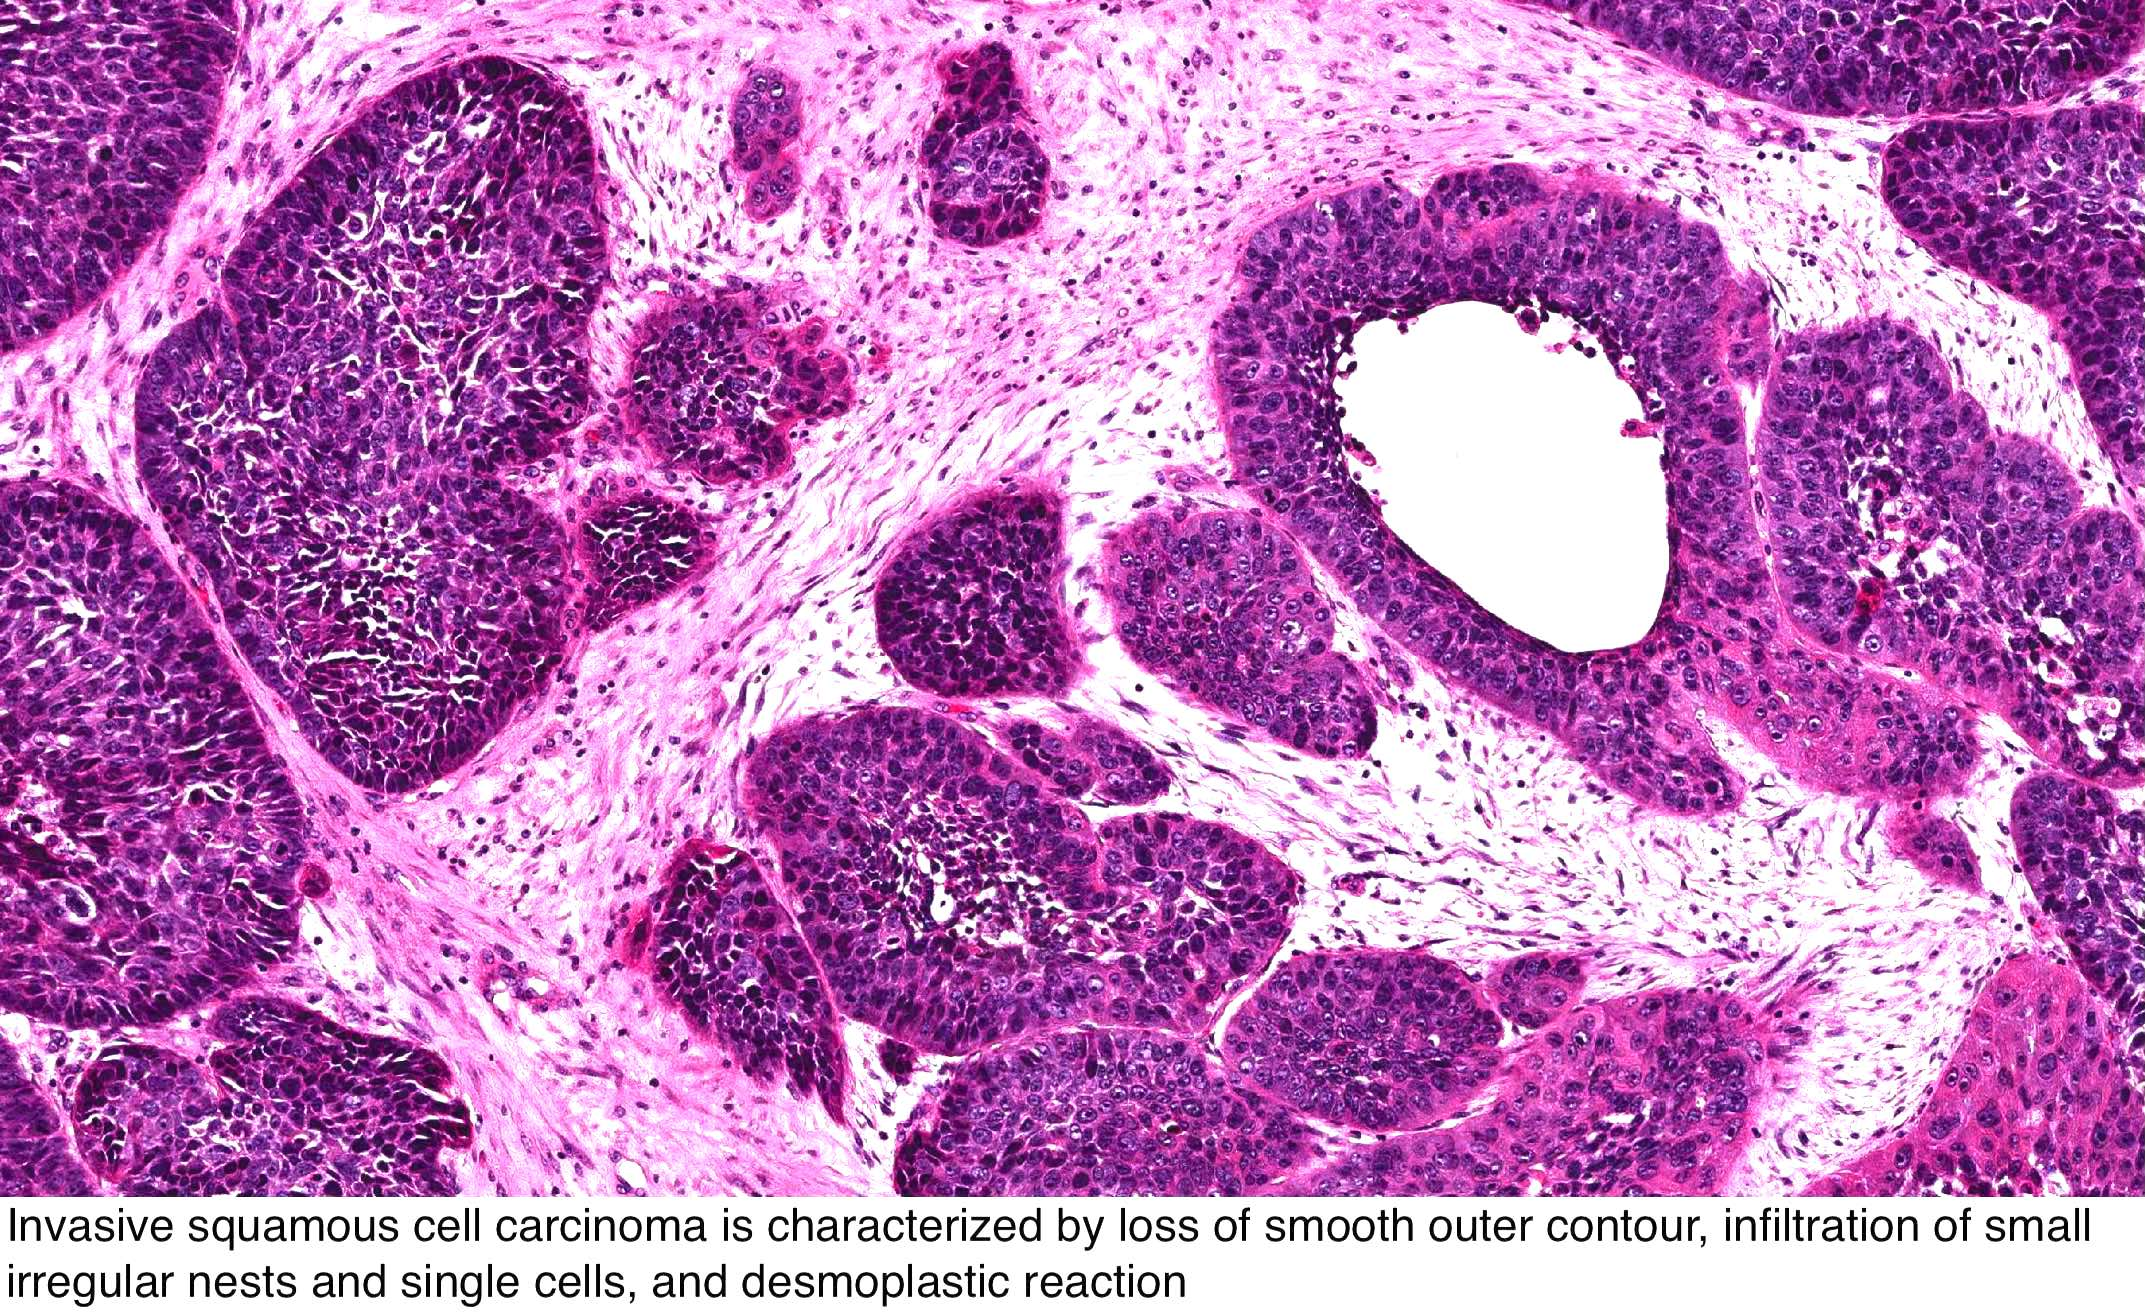 papilloma vs squamous cell carcinoma